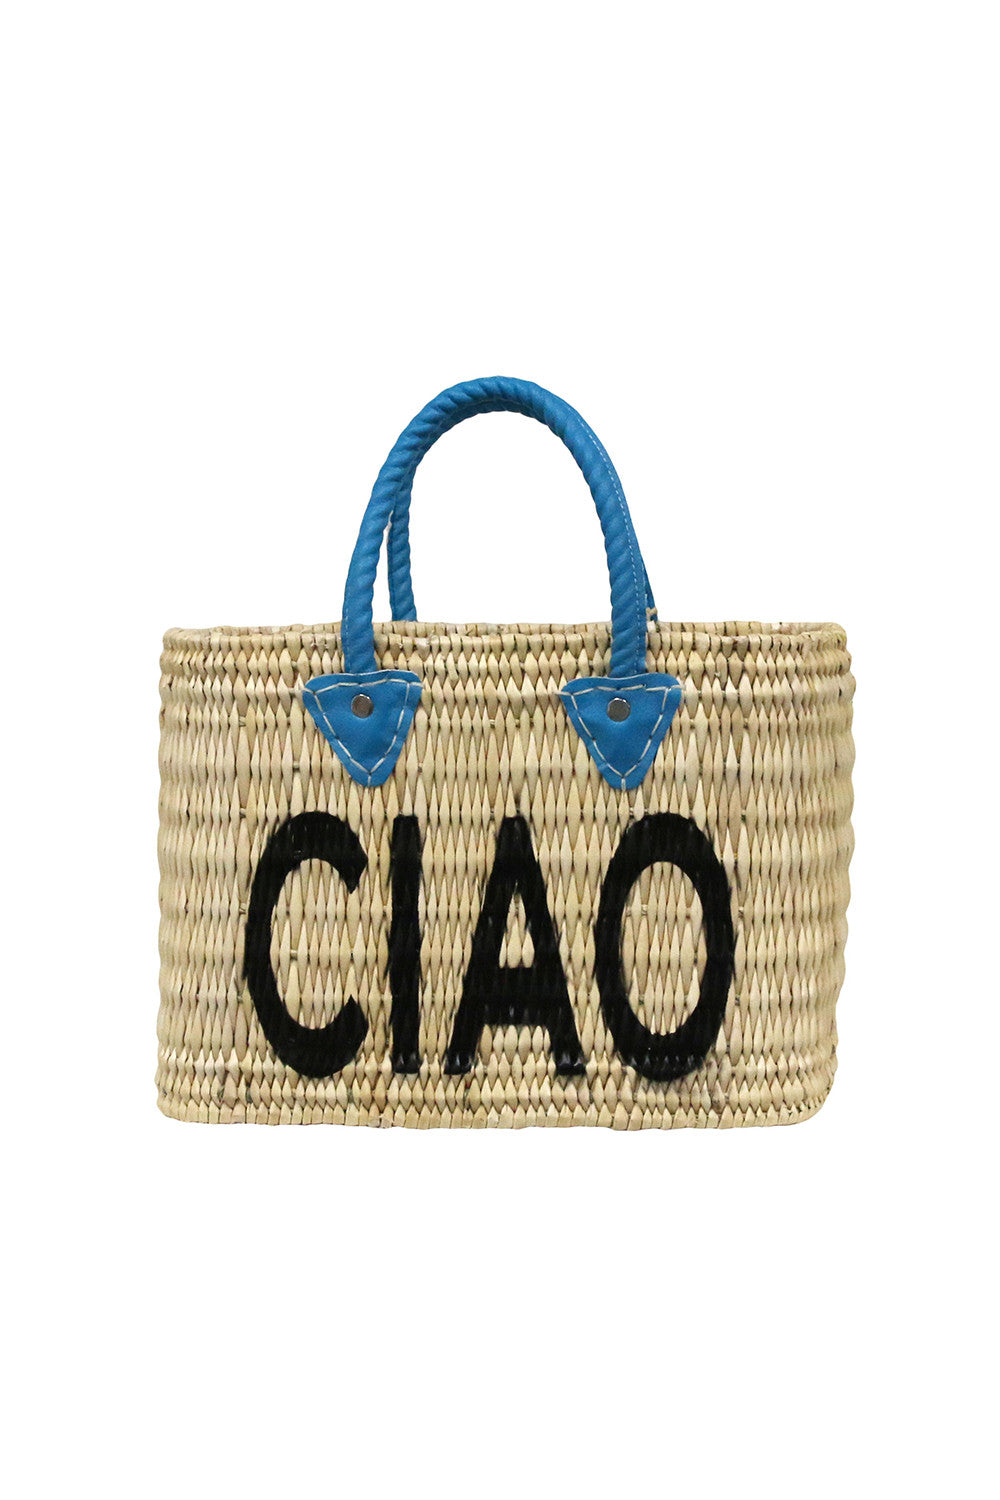 Jane 'Ciao' Small Box Bag With Flavia Pompom - MISA Los Angeles